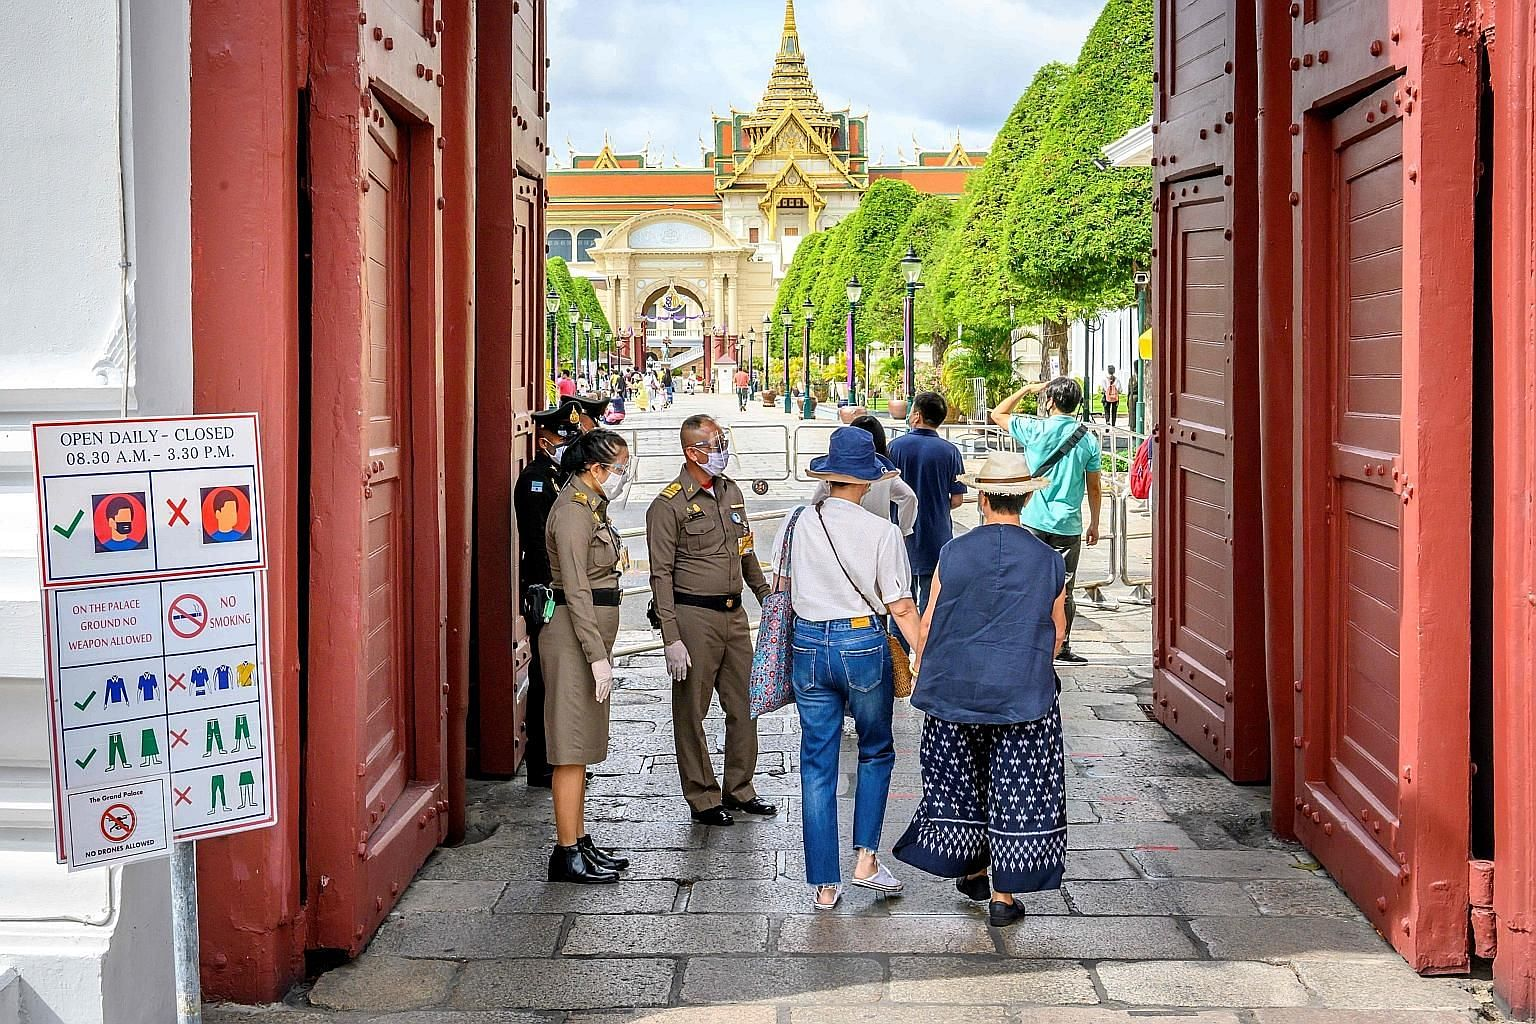 Visitors entering the Grand Palace in Bangkok on Sunday. Tourist attractions within 300km of Bangkok have welcomed 50 per cent to 70 per cent of their usual visitor numbers so far, said Tourism Council of Thailand president Chairat Trirattanajaraspor